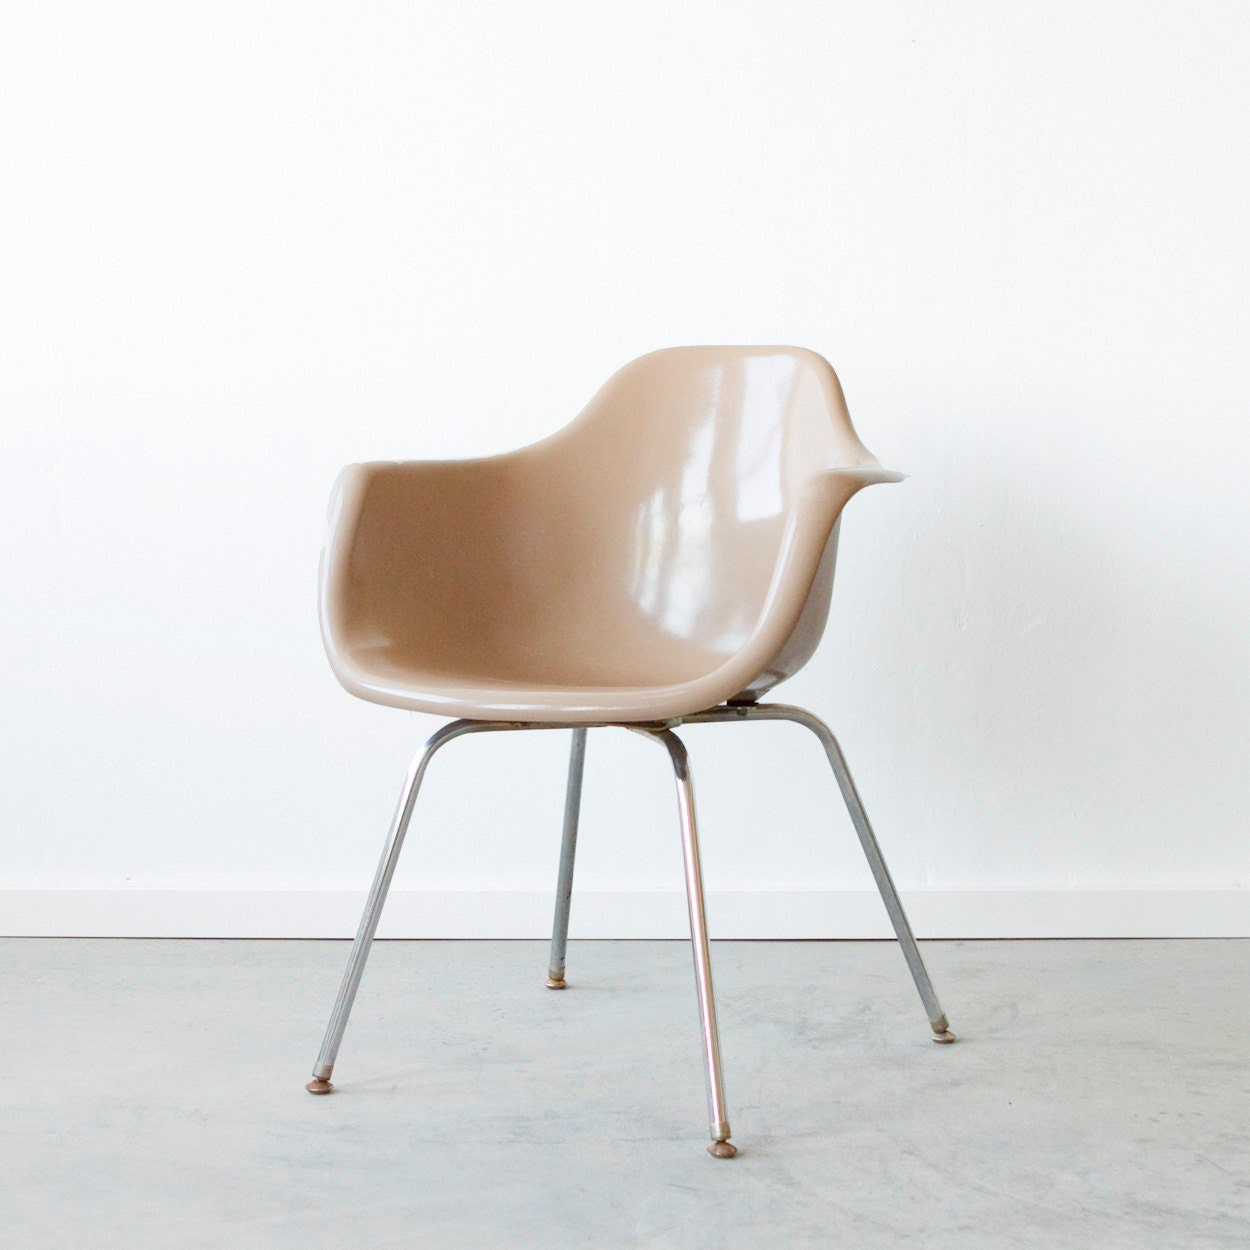 Vintage 1960's Eames Style Krueger Arm Chair in Toffee